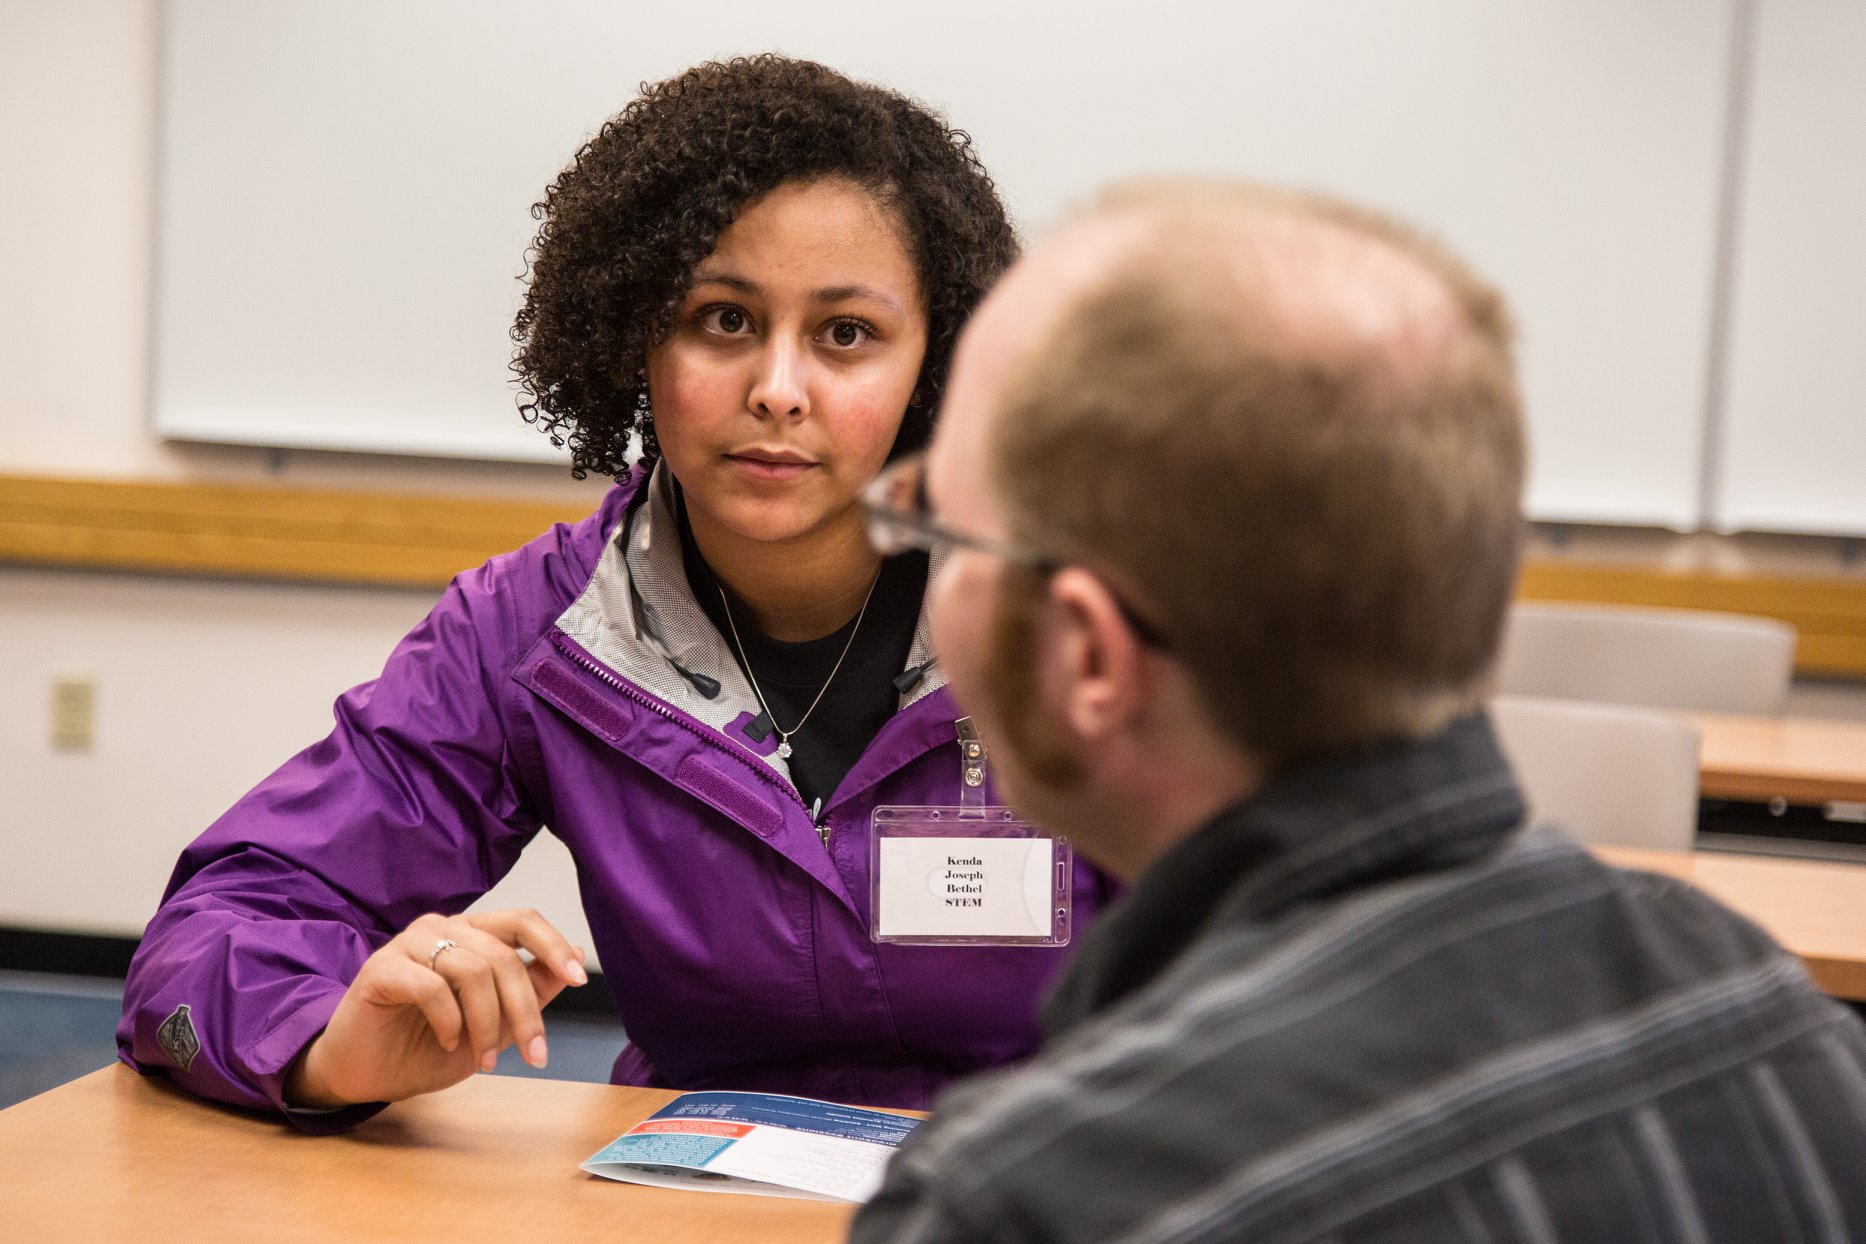 SPSCC's New Community Information Sessions Provide Educational Options for Adult Returning Students - ThurstonTalk